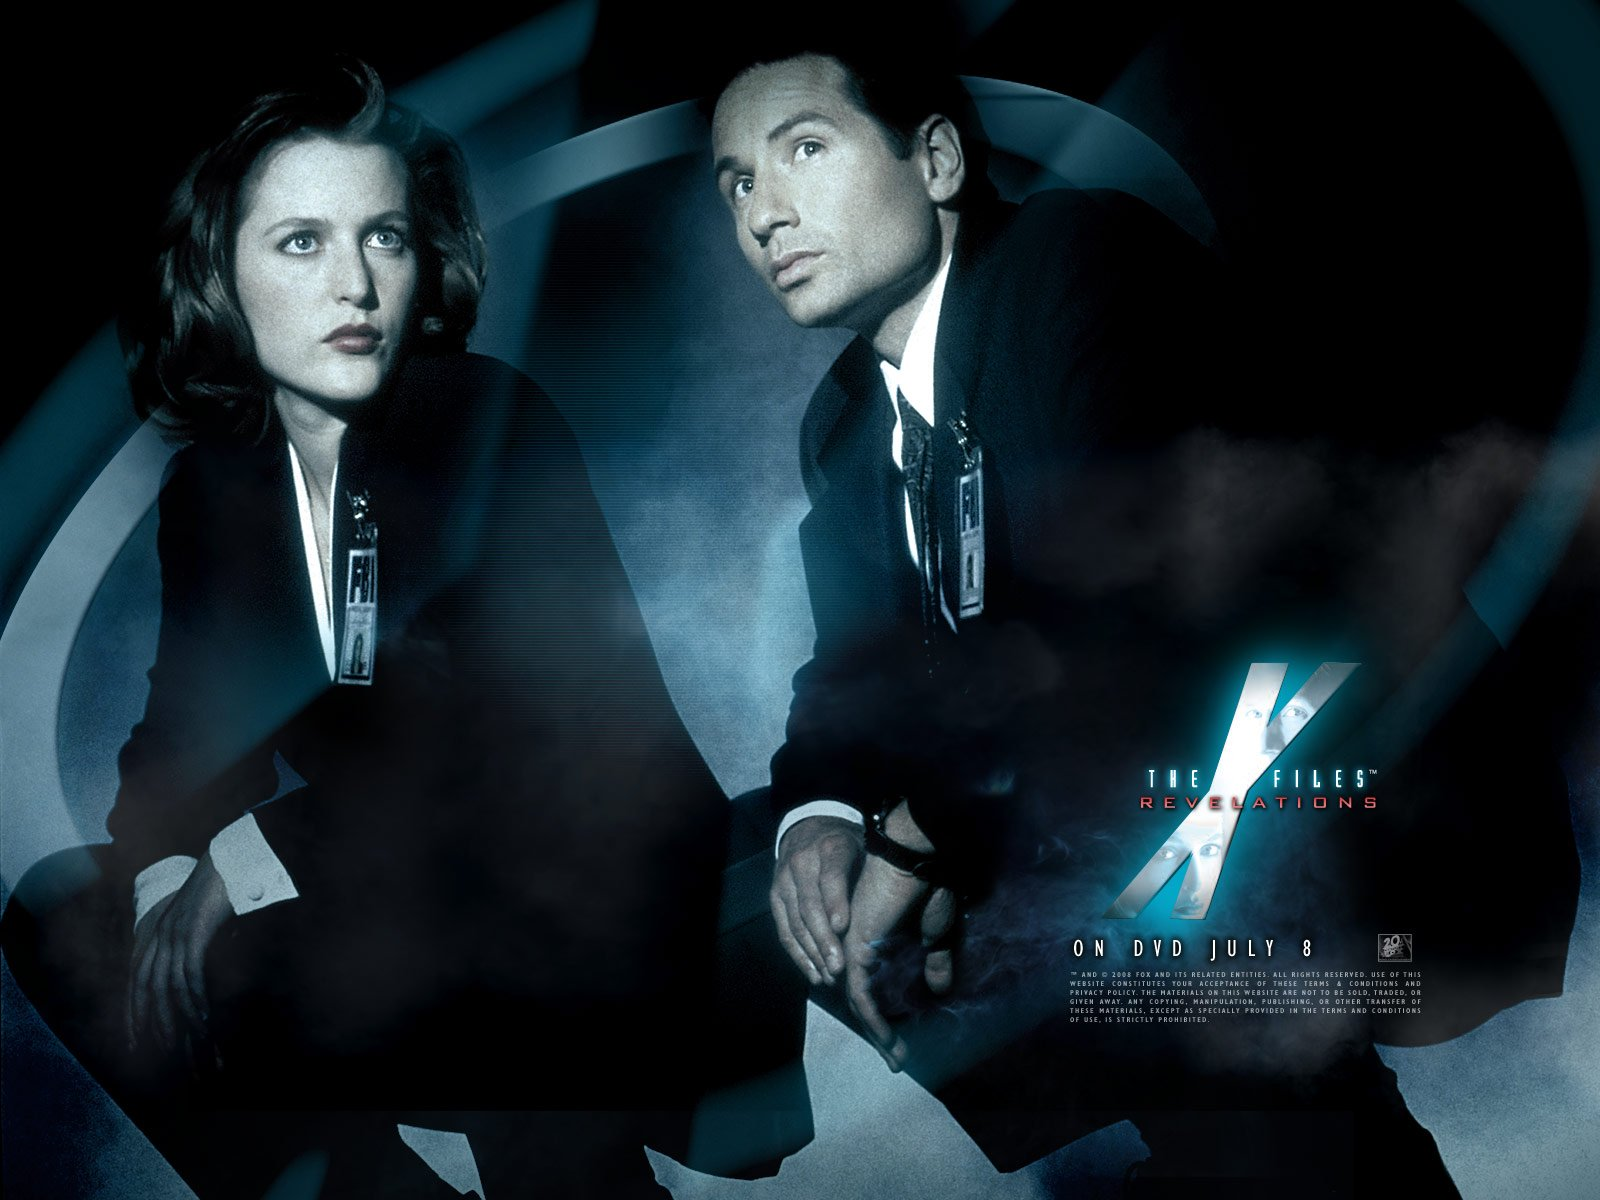 the x files sci fi mystery drama television files series